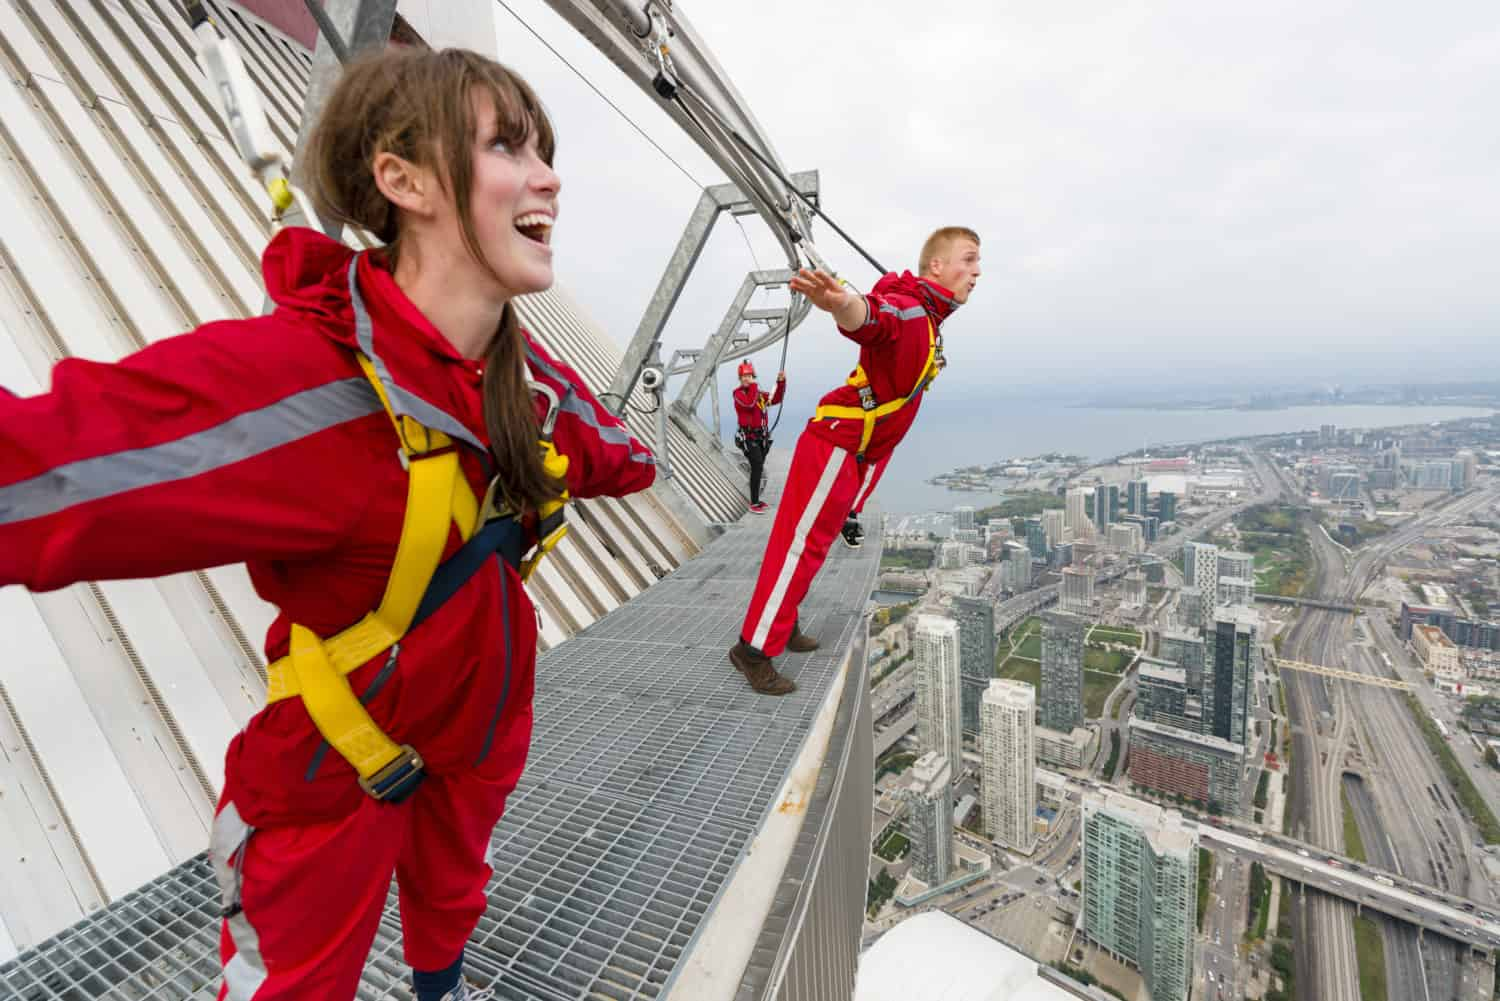 Edgewalk, CN Tower